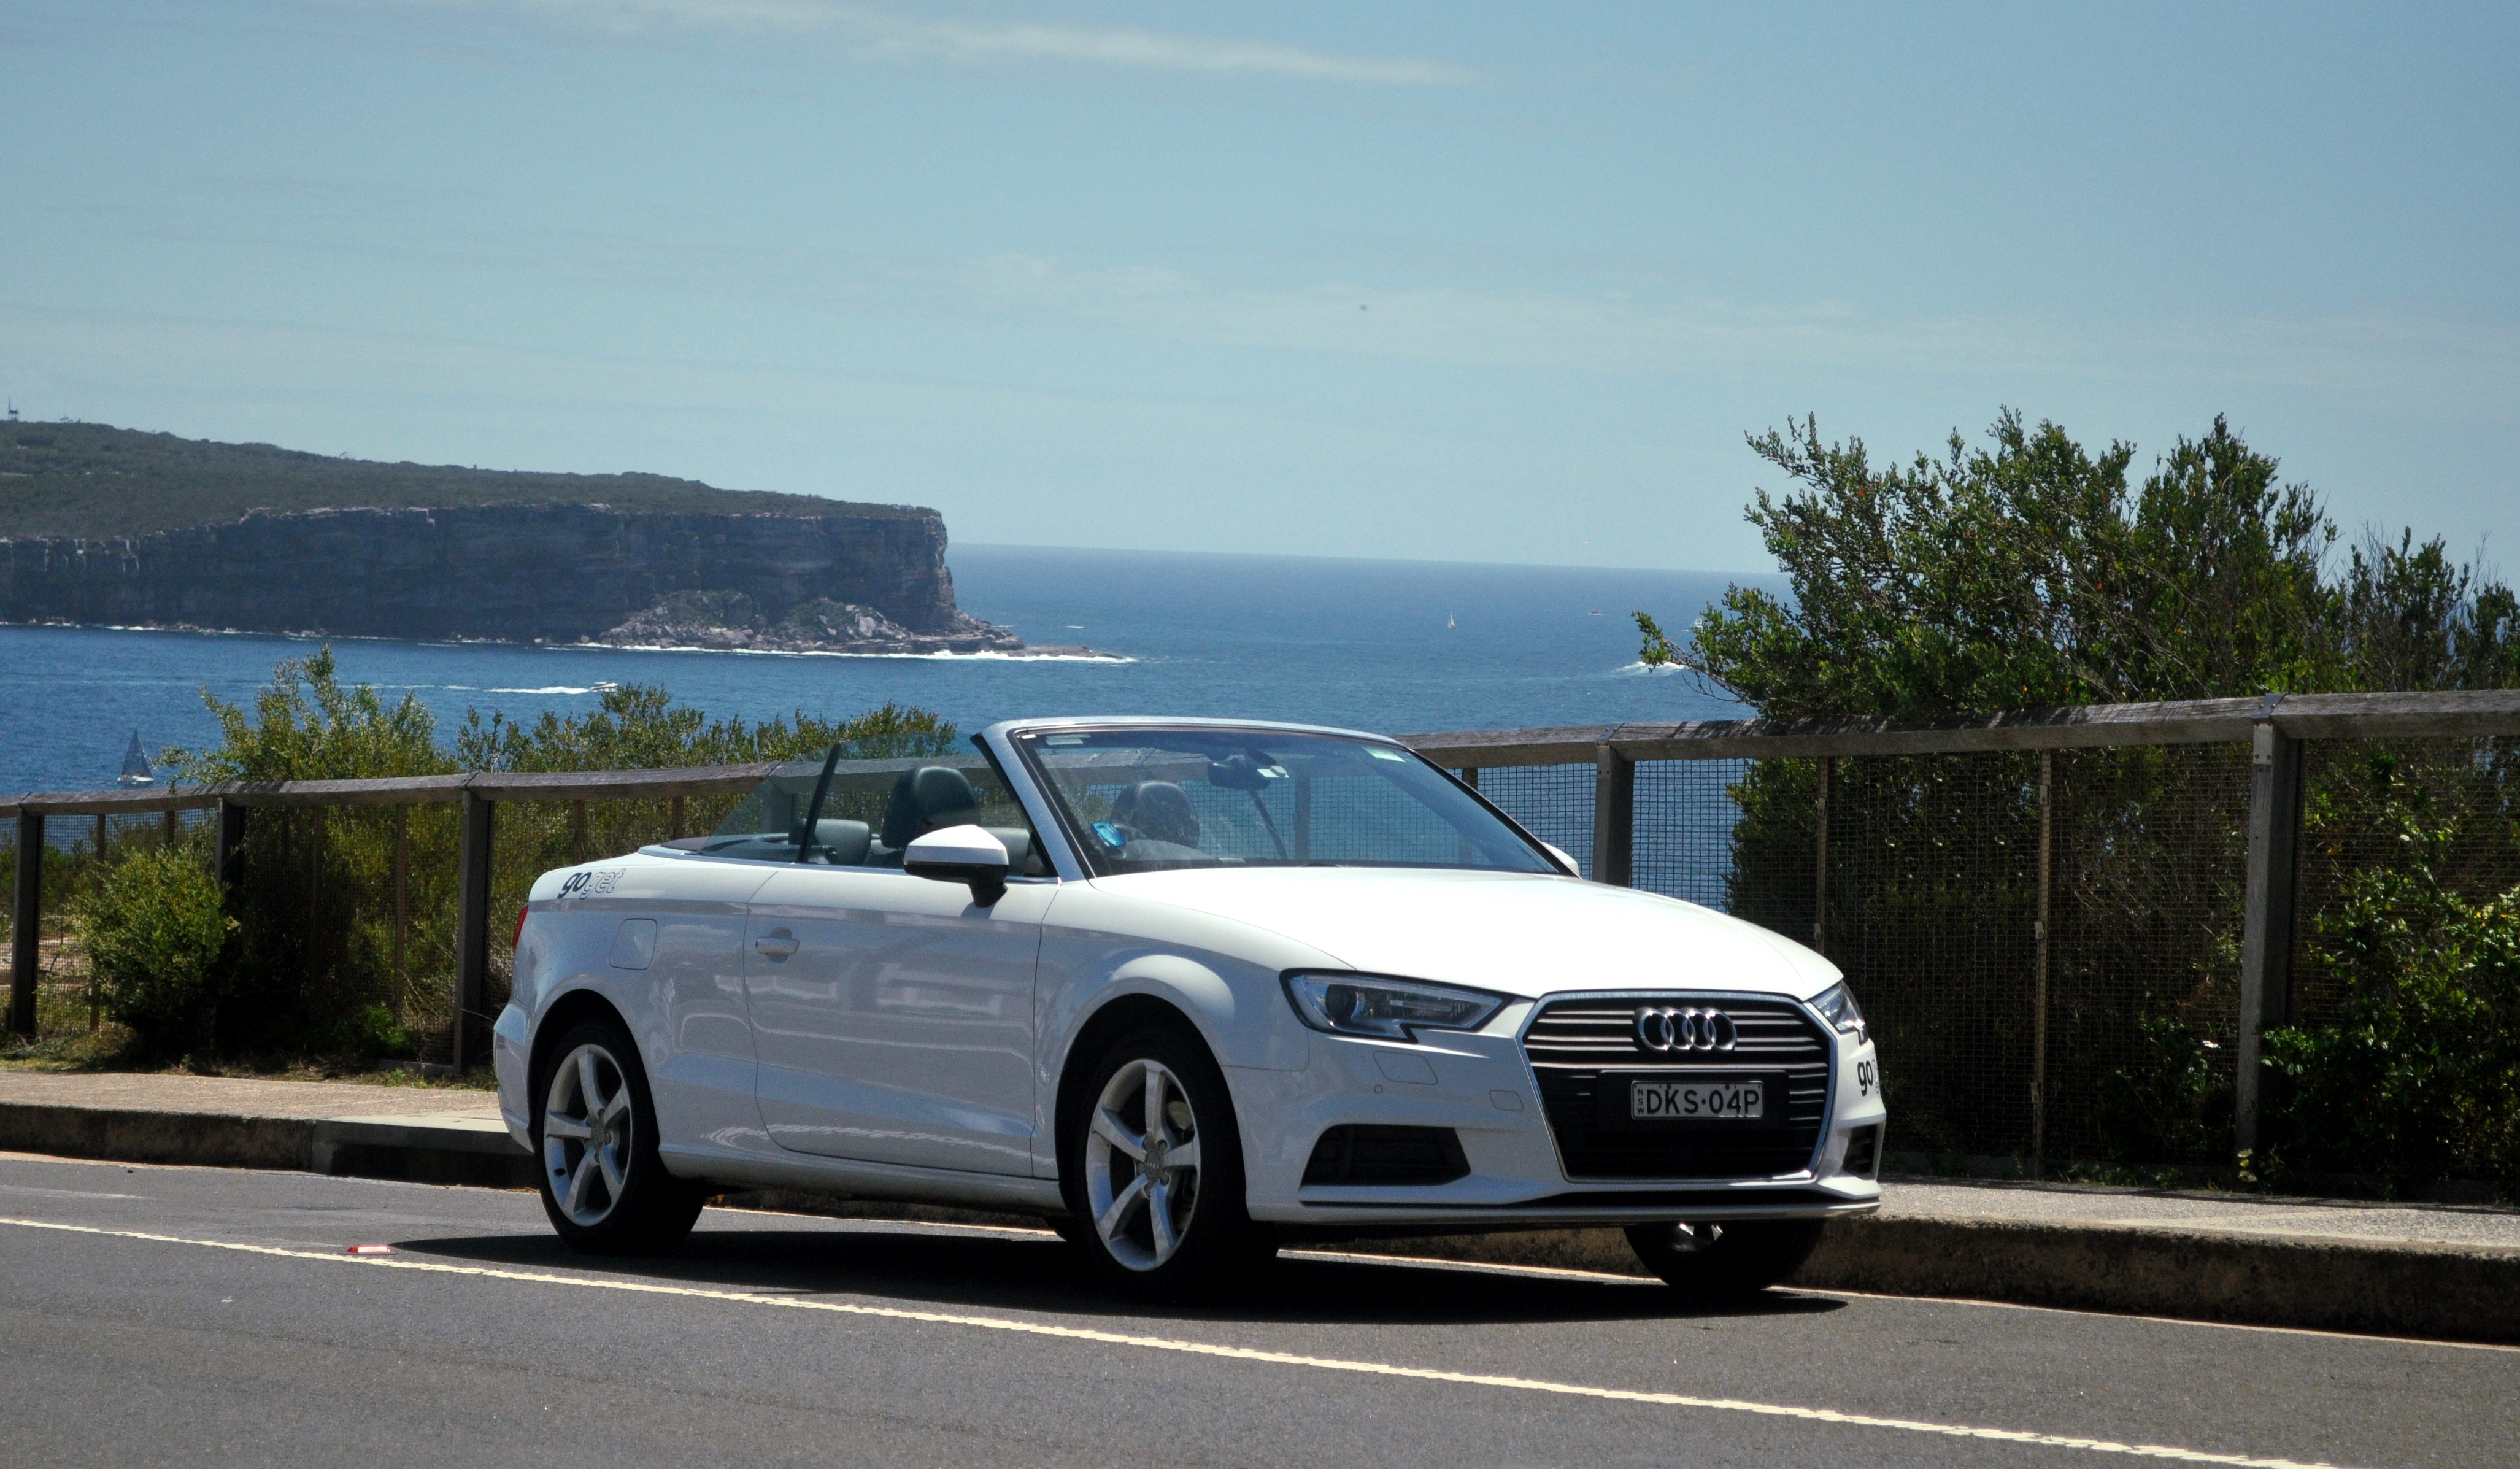 A white GoGet Audi A3 parked by the sea - the open ocean crashing against a rocky headland in the background